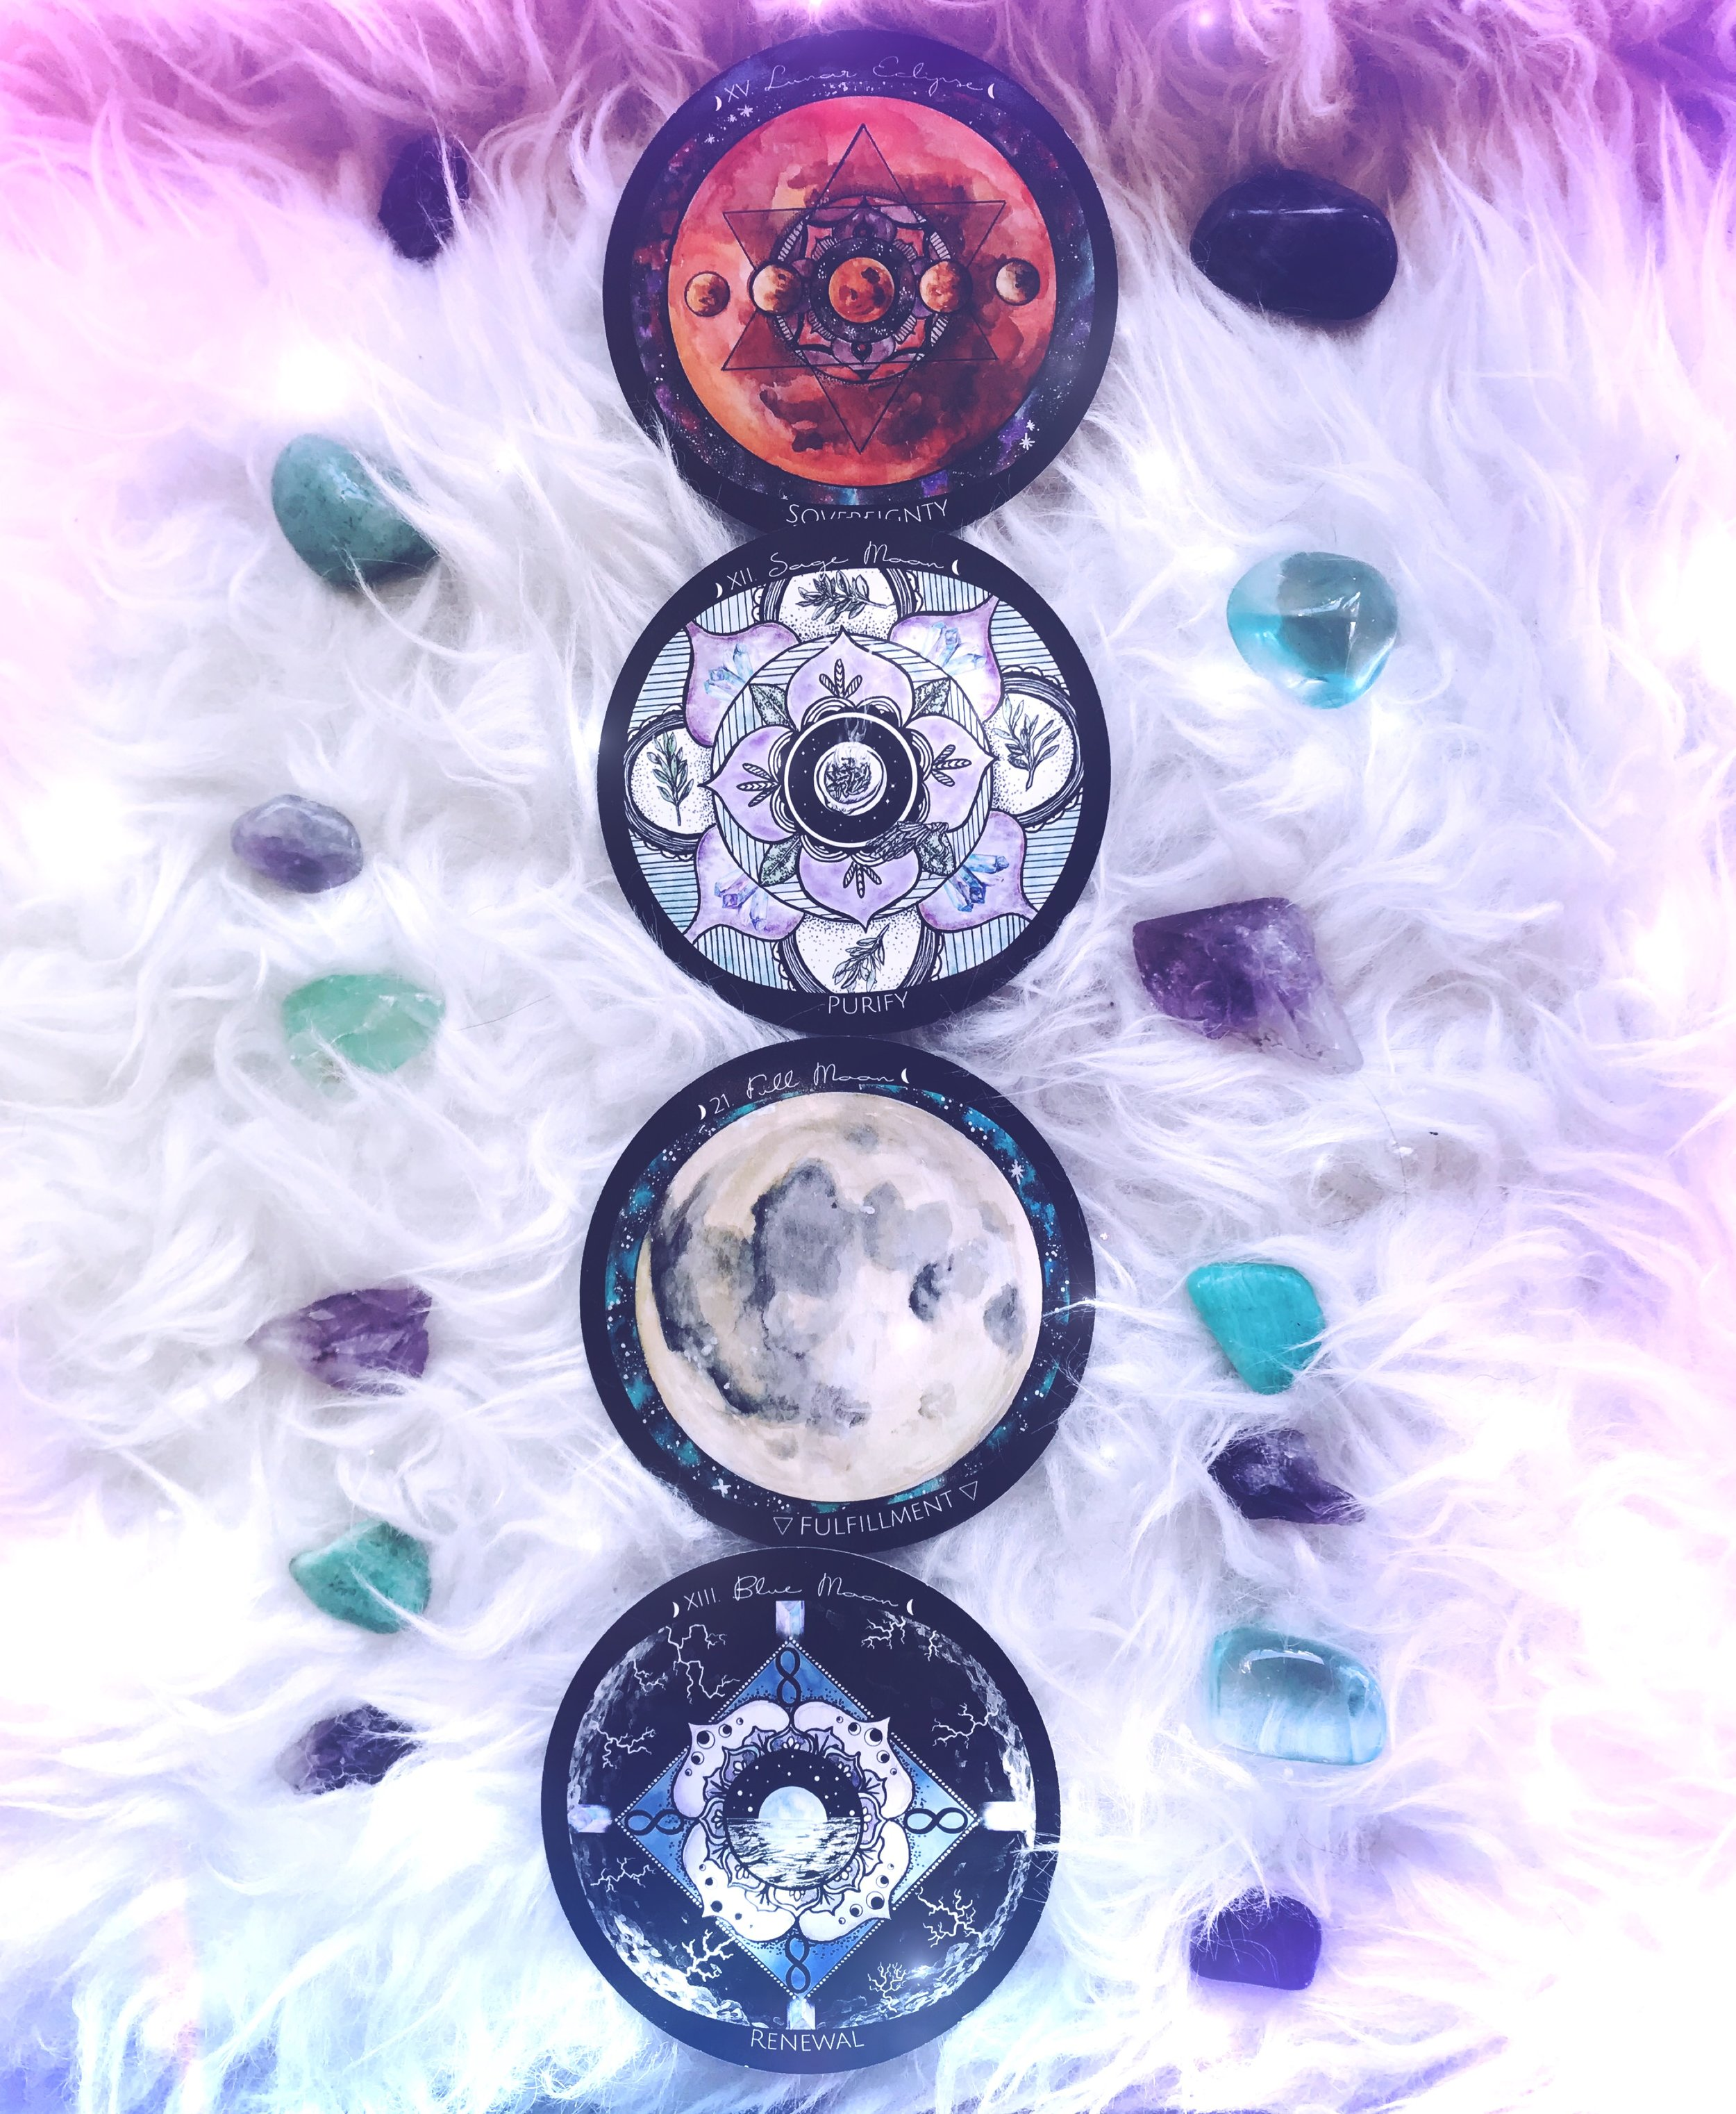 Full Moon Reading Spirit de la Lune